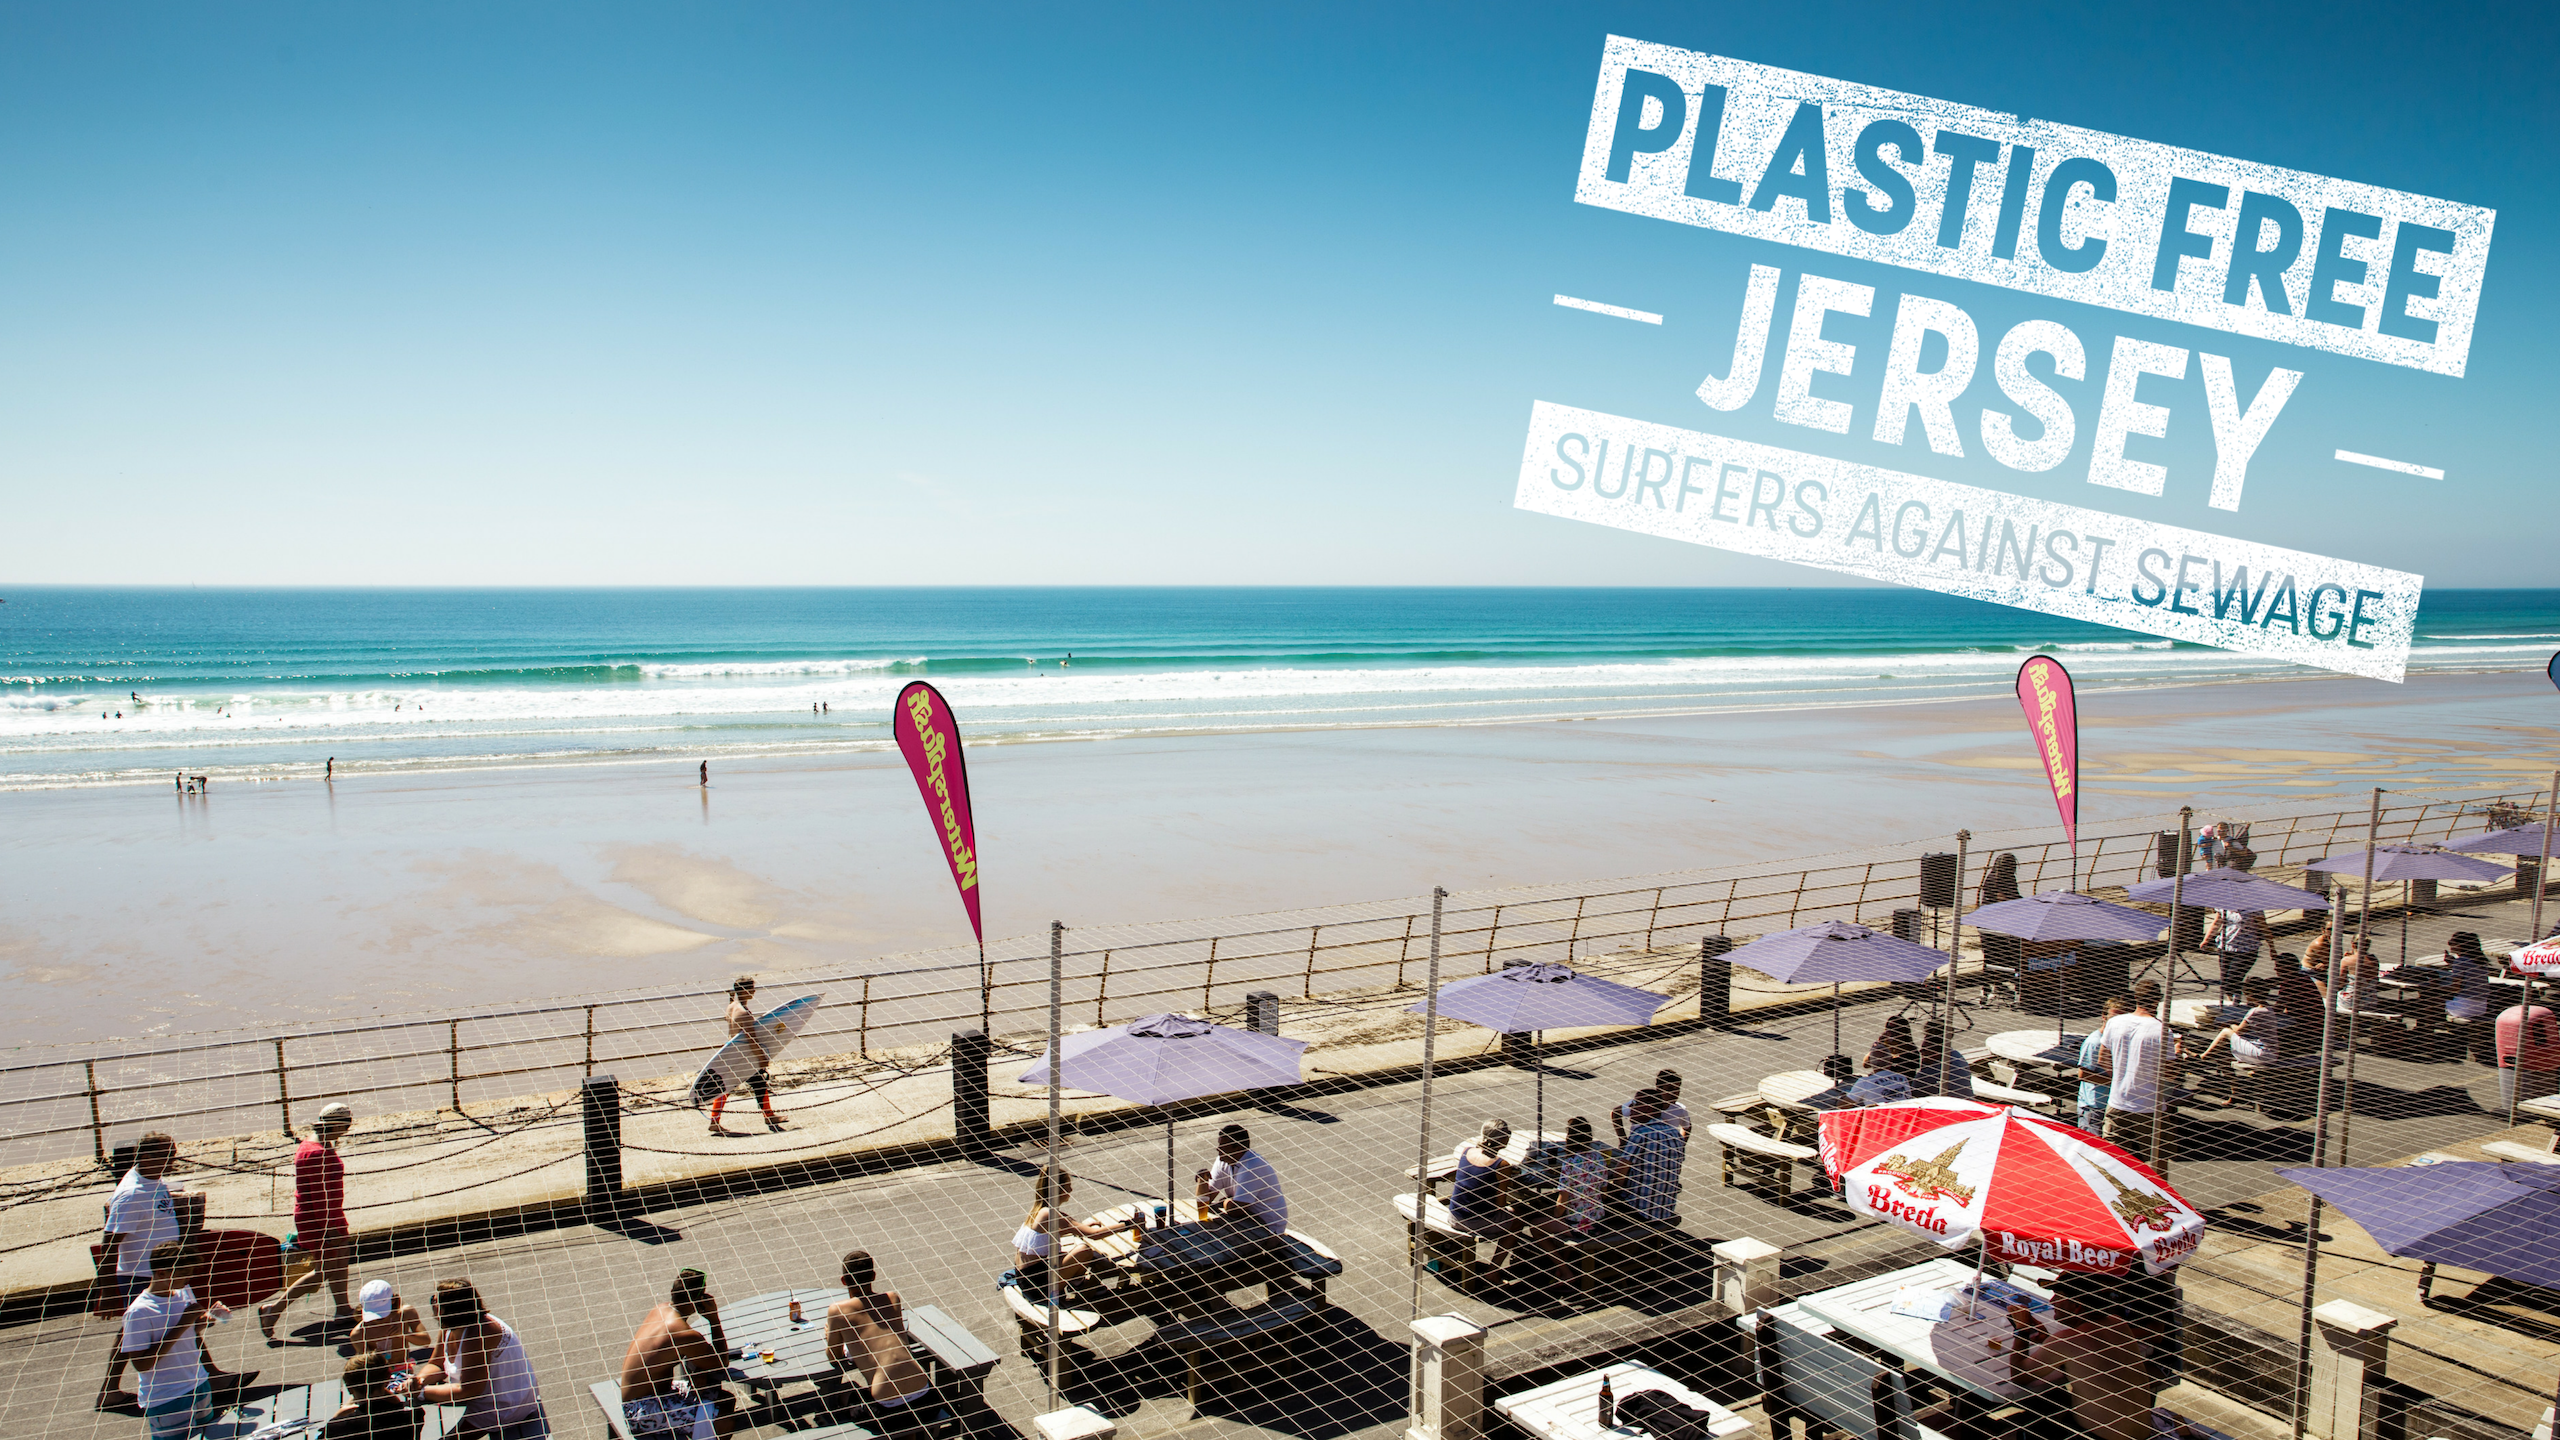 The Watersplash achieves 'Plastic Free' status